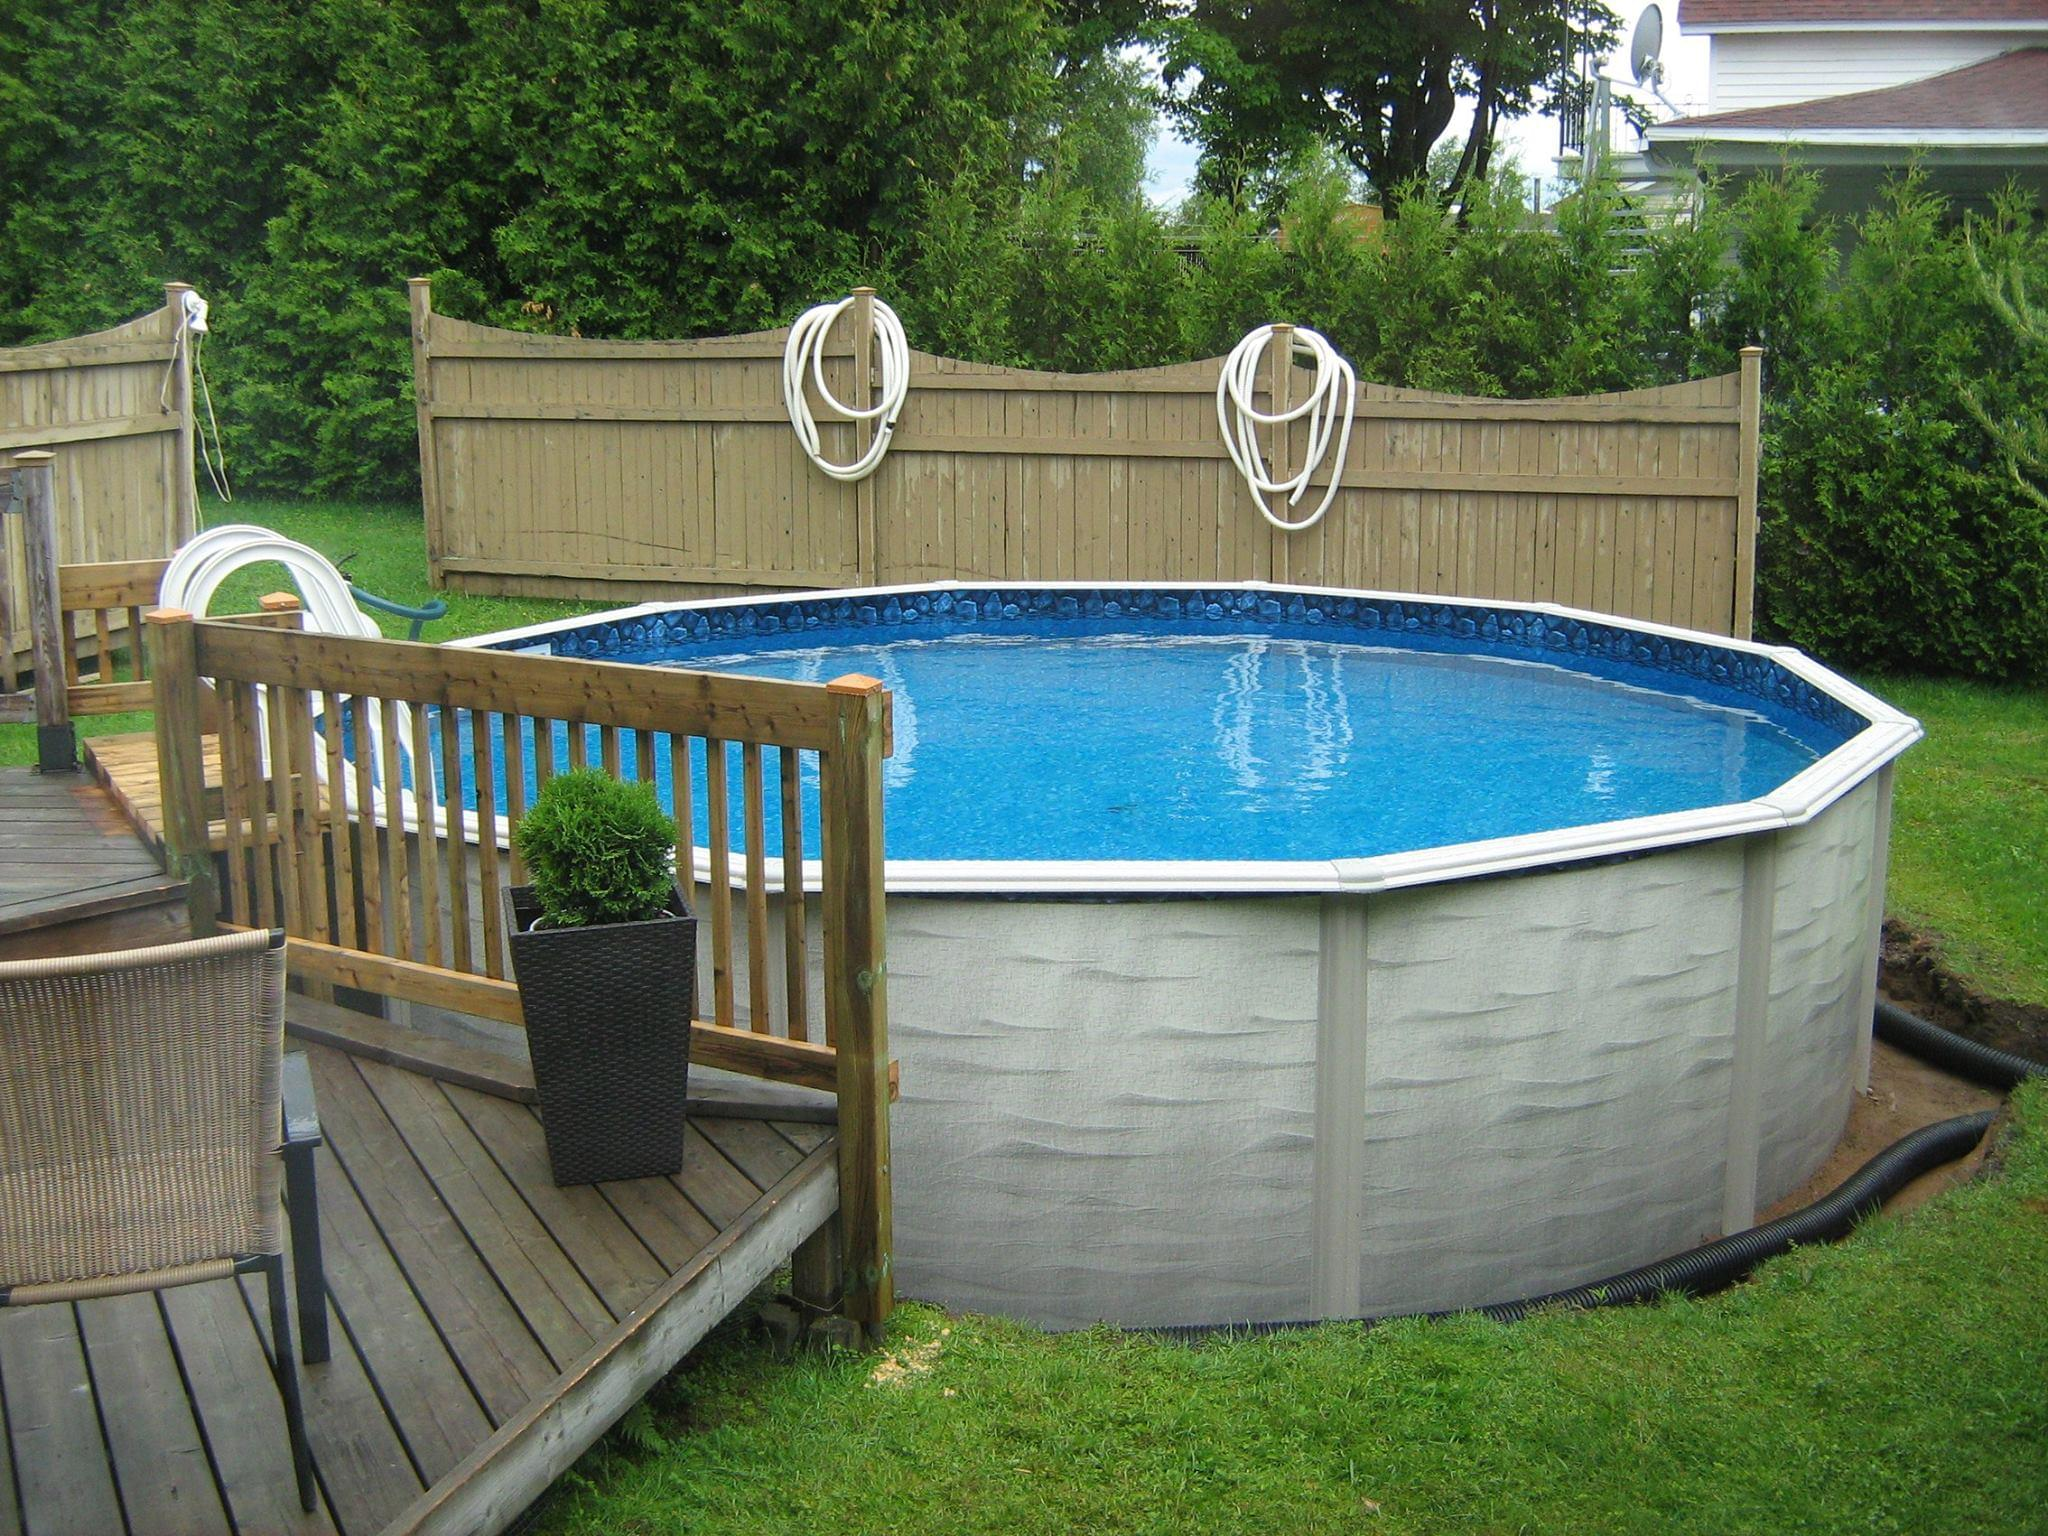 Evolution 15 ft round above ground p pool supplies canada - Images of above ground pools ...